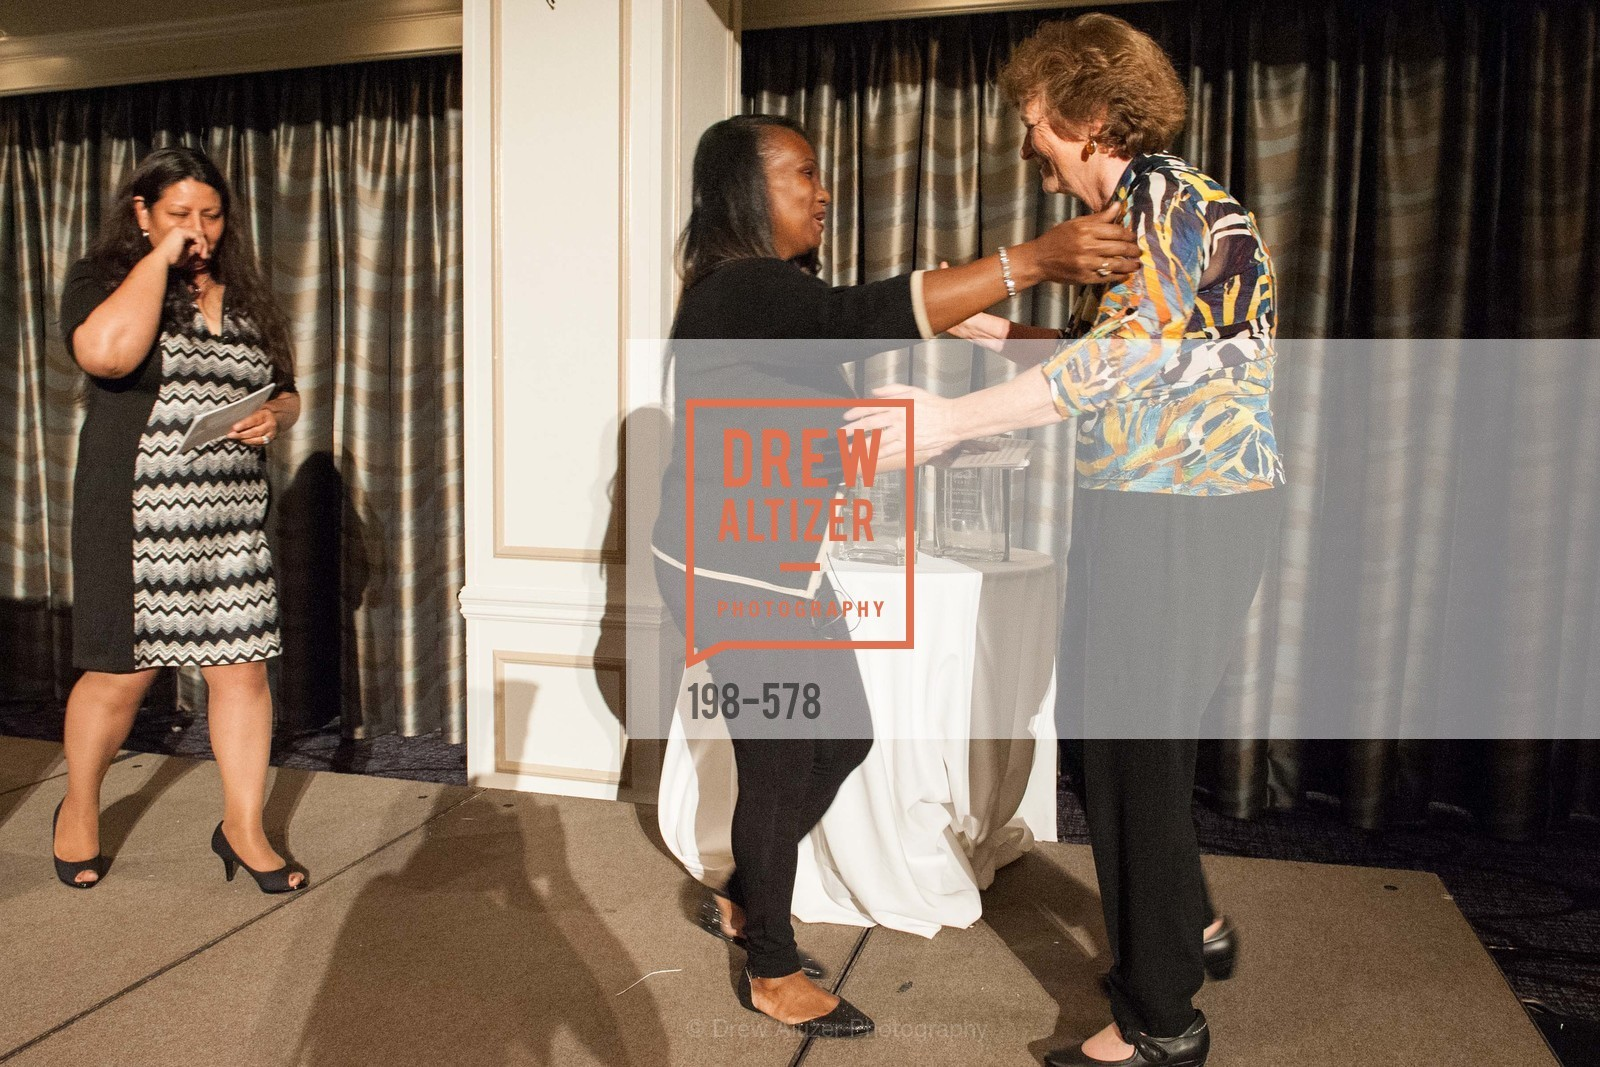 Sonya Batres, Carla Roberts, Martha Ryan, HOMELESS PRENATAL Annual Luncheon 2014, US, October 1st, 2014,Drew Altizer, Drew Altizer Photography, full-service agency, private events, San Francisco photographer, photographer california